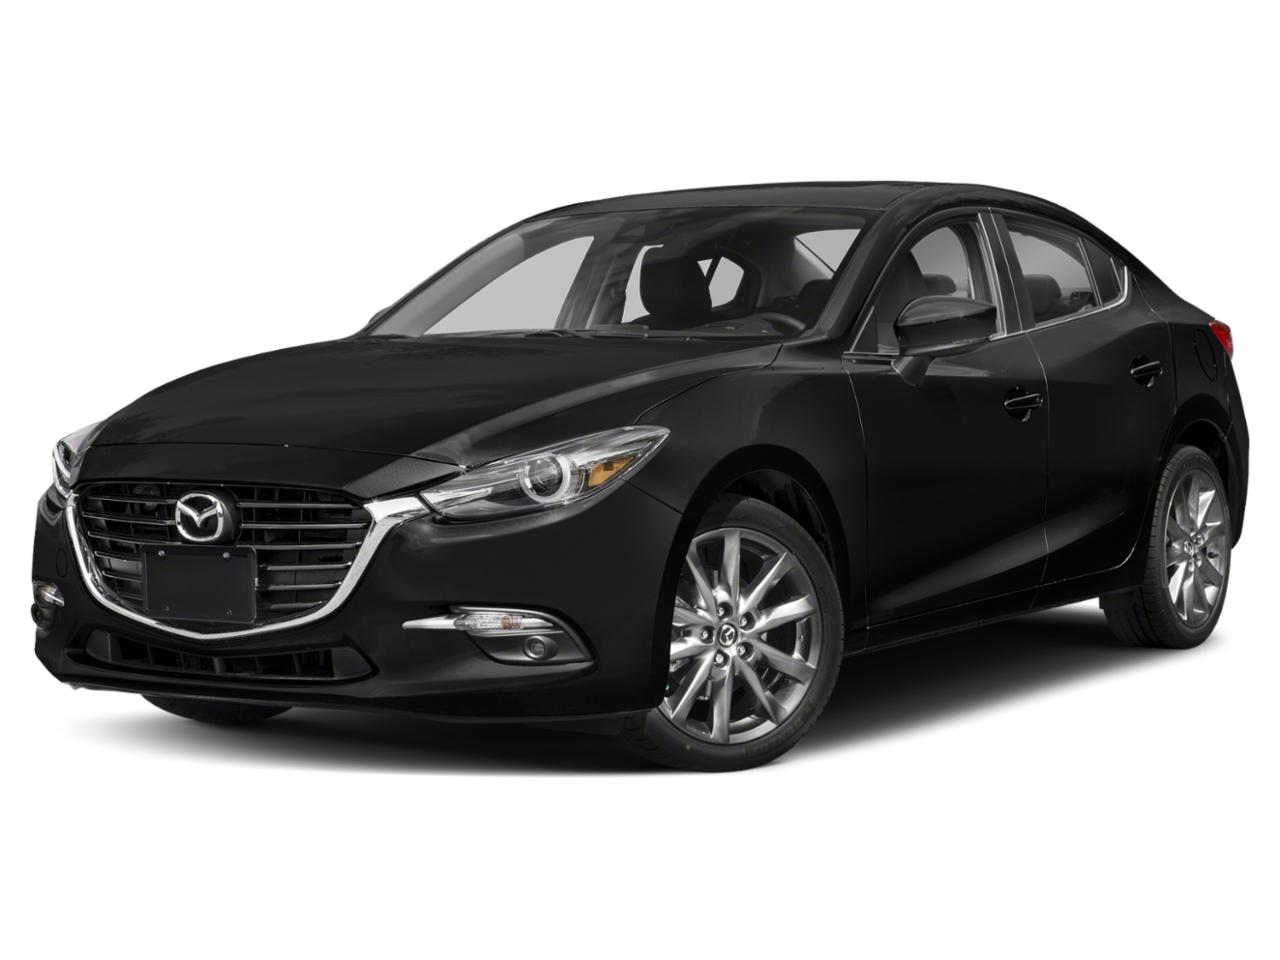 2018 Mazda Mazda3 4-Door Vehicle Photo in Hamden, CT 06517